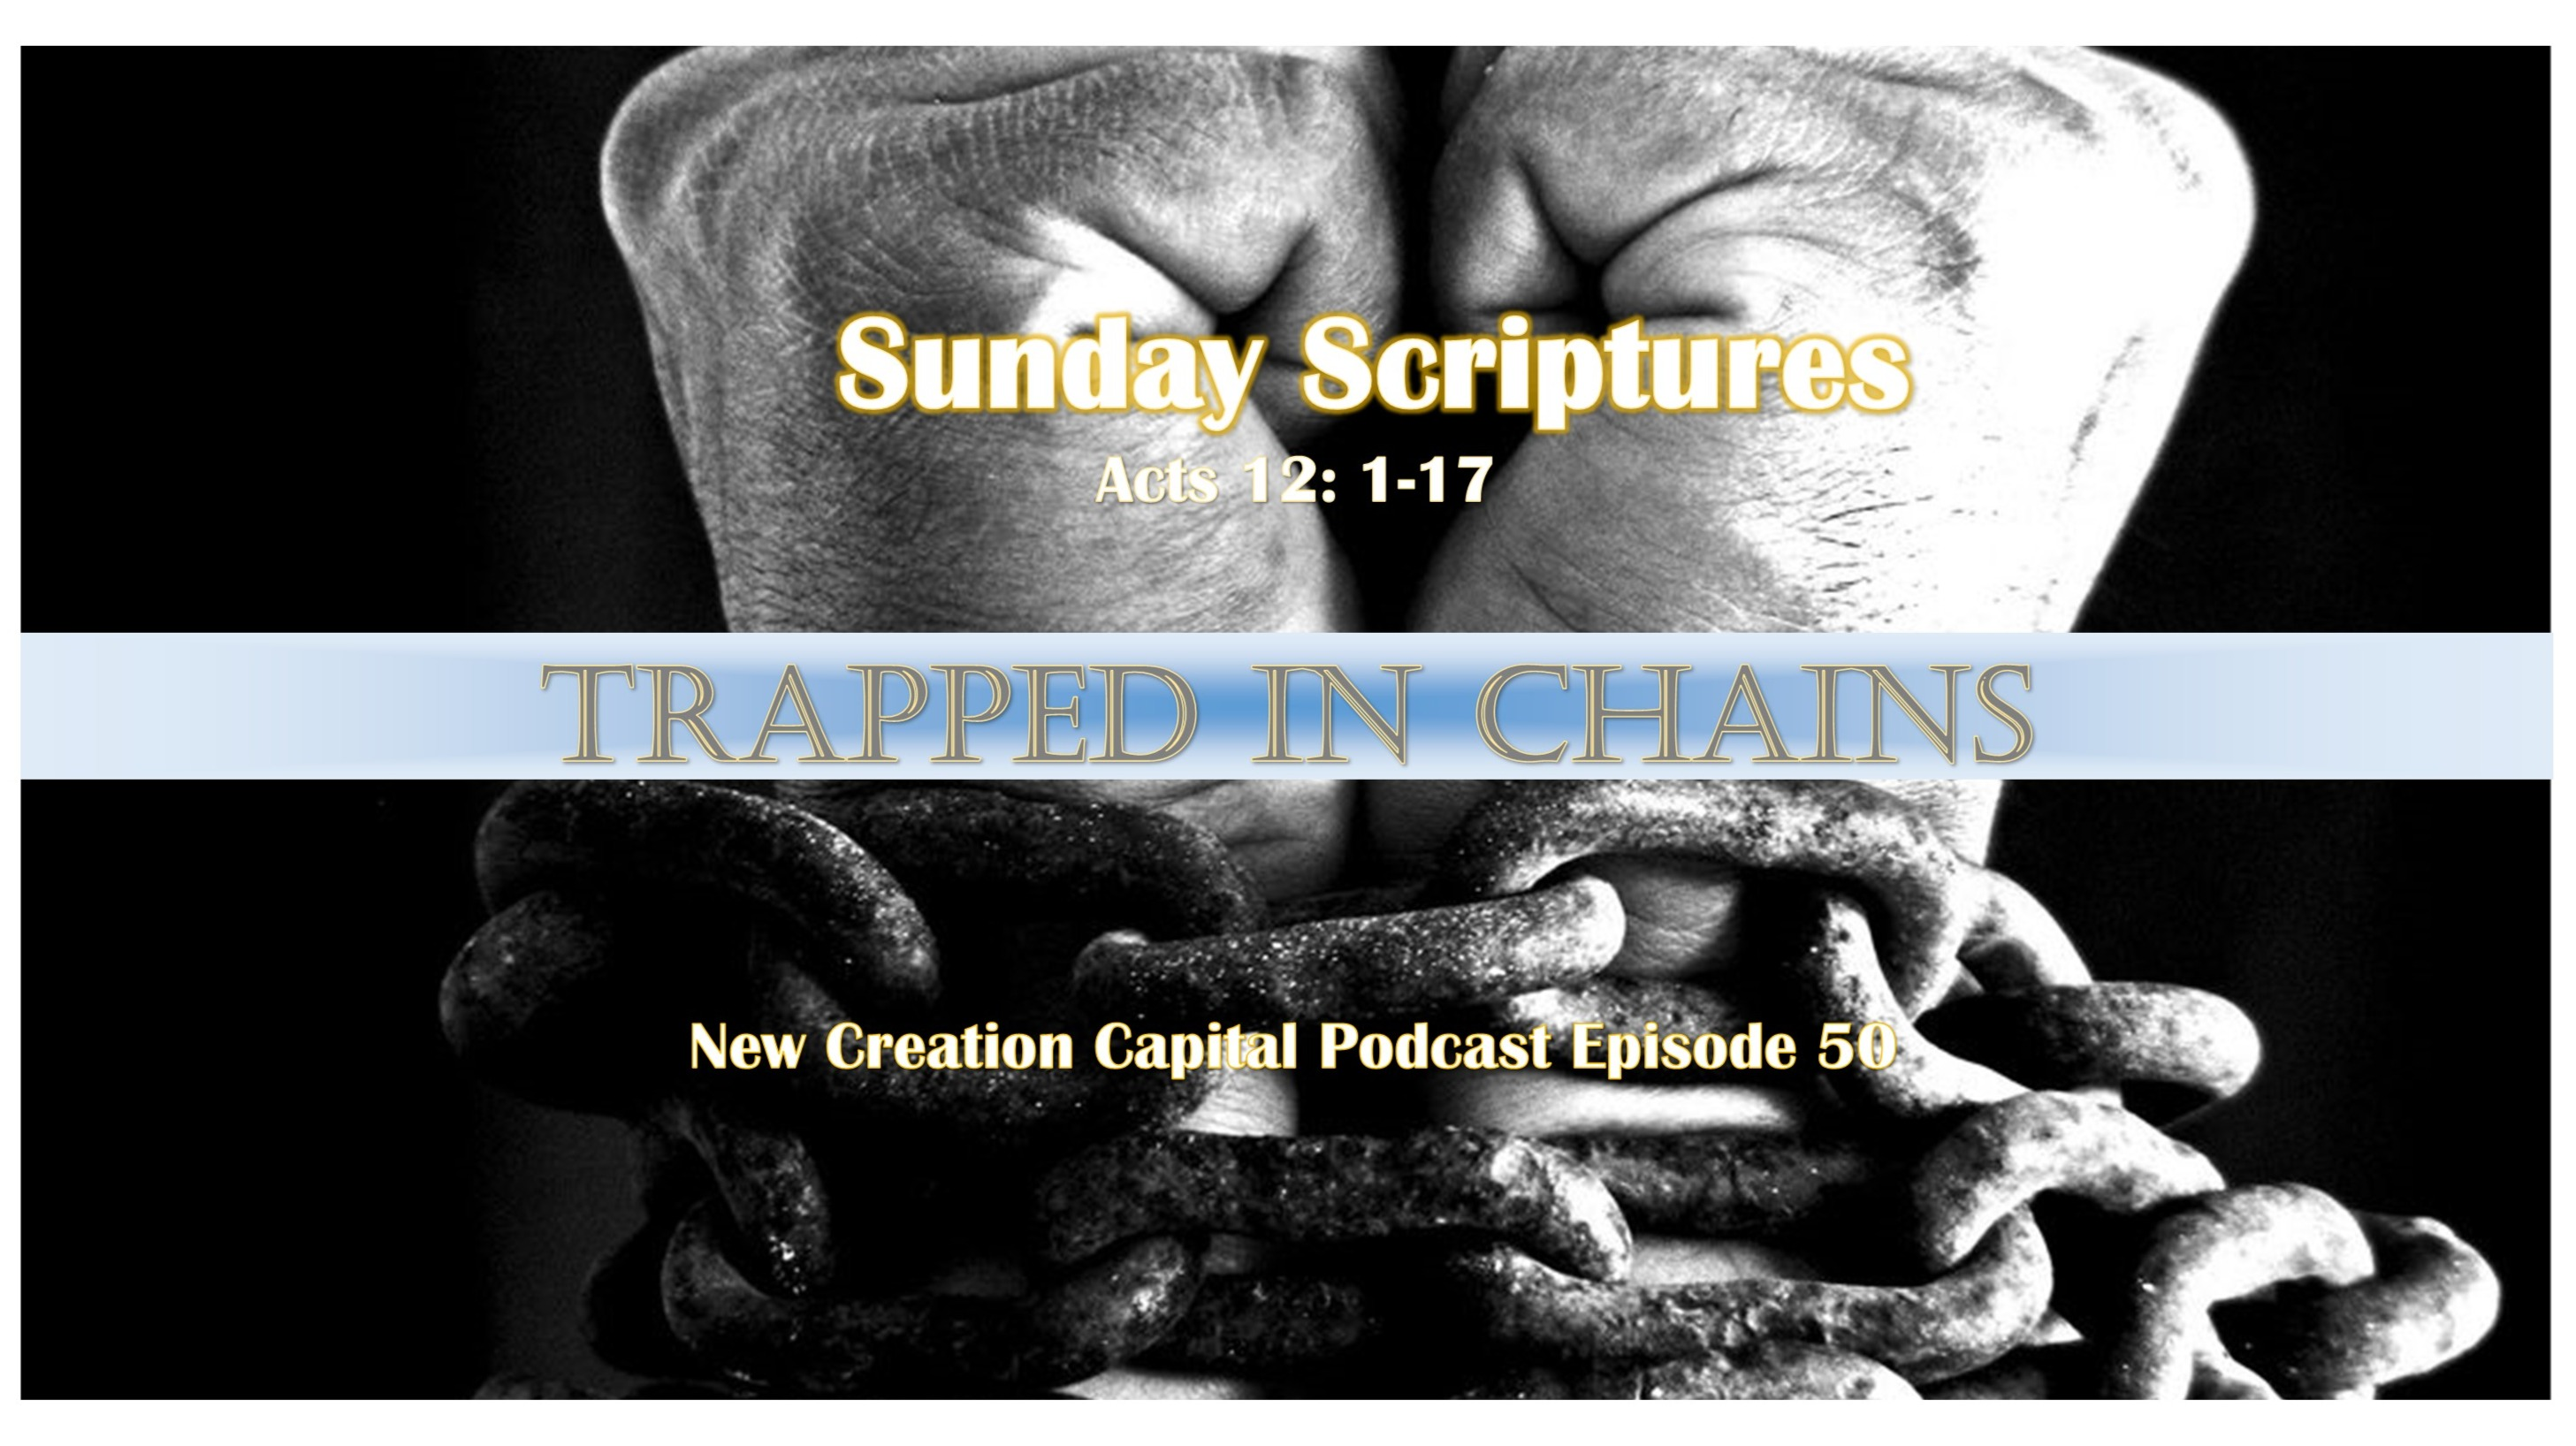 New Creation Capital Podcast Episode 50 Jesus Christ